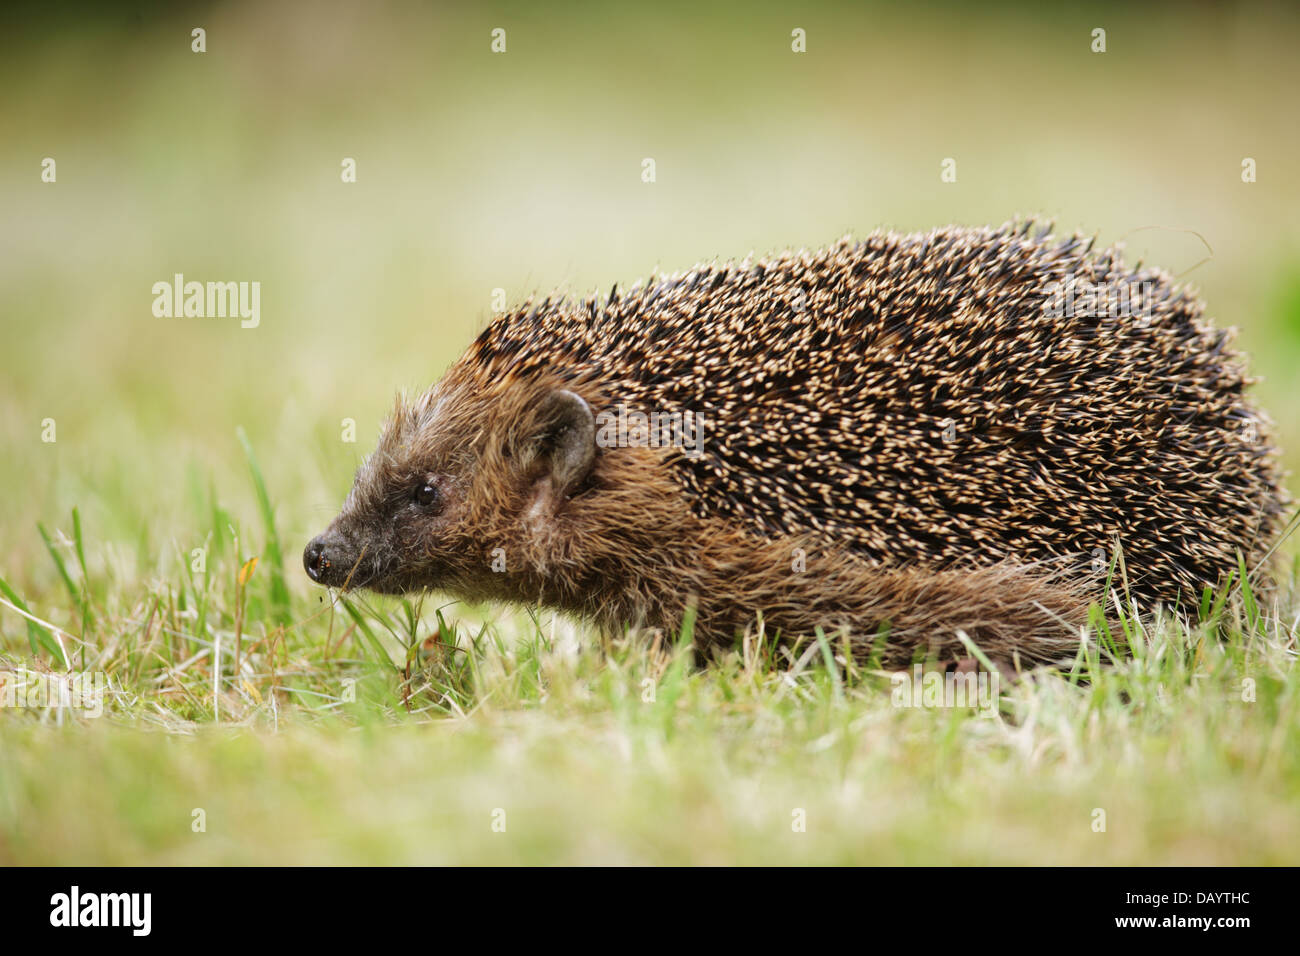 Hedgehog (Erinaceus europaeus) on a lawn. Photographed in Randbøldal, Denmark - Stock Image